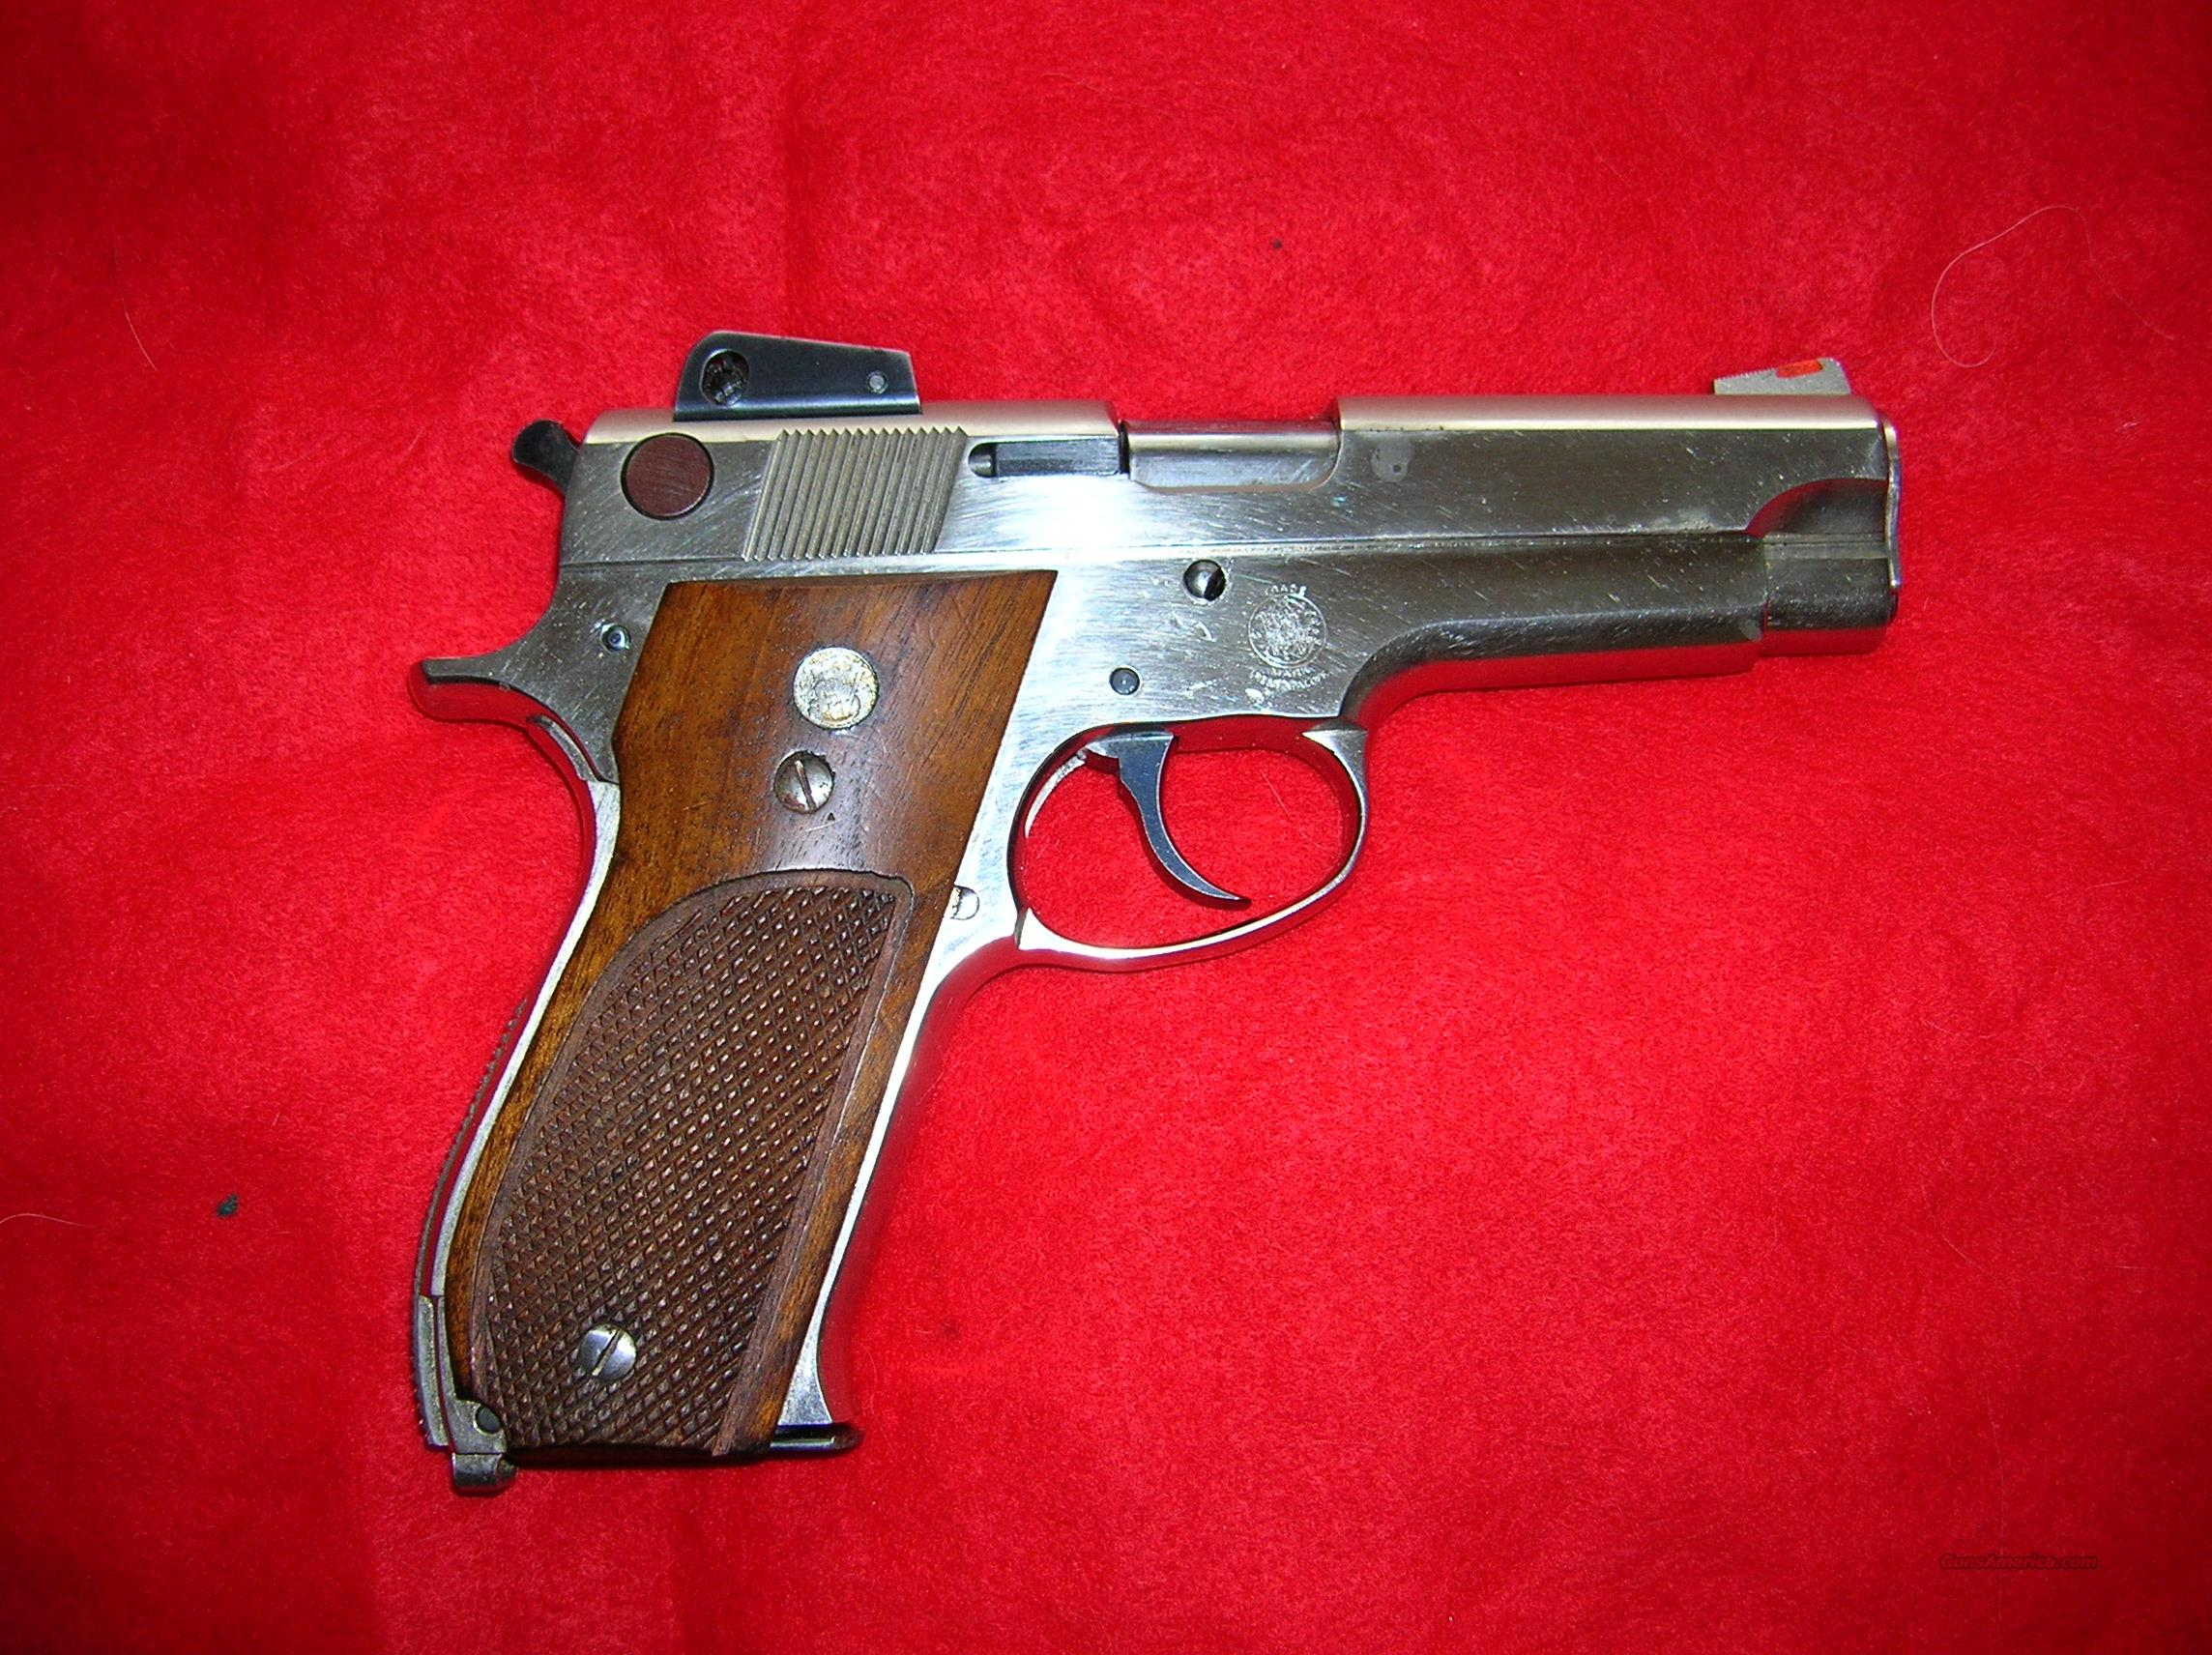 Smith & Wesson Model 539  9mm  Guns > Pistols > Smith & Wesson Pistols - Autos > Steel Frame